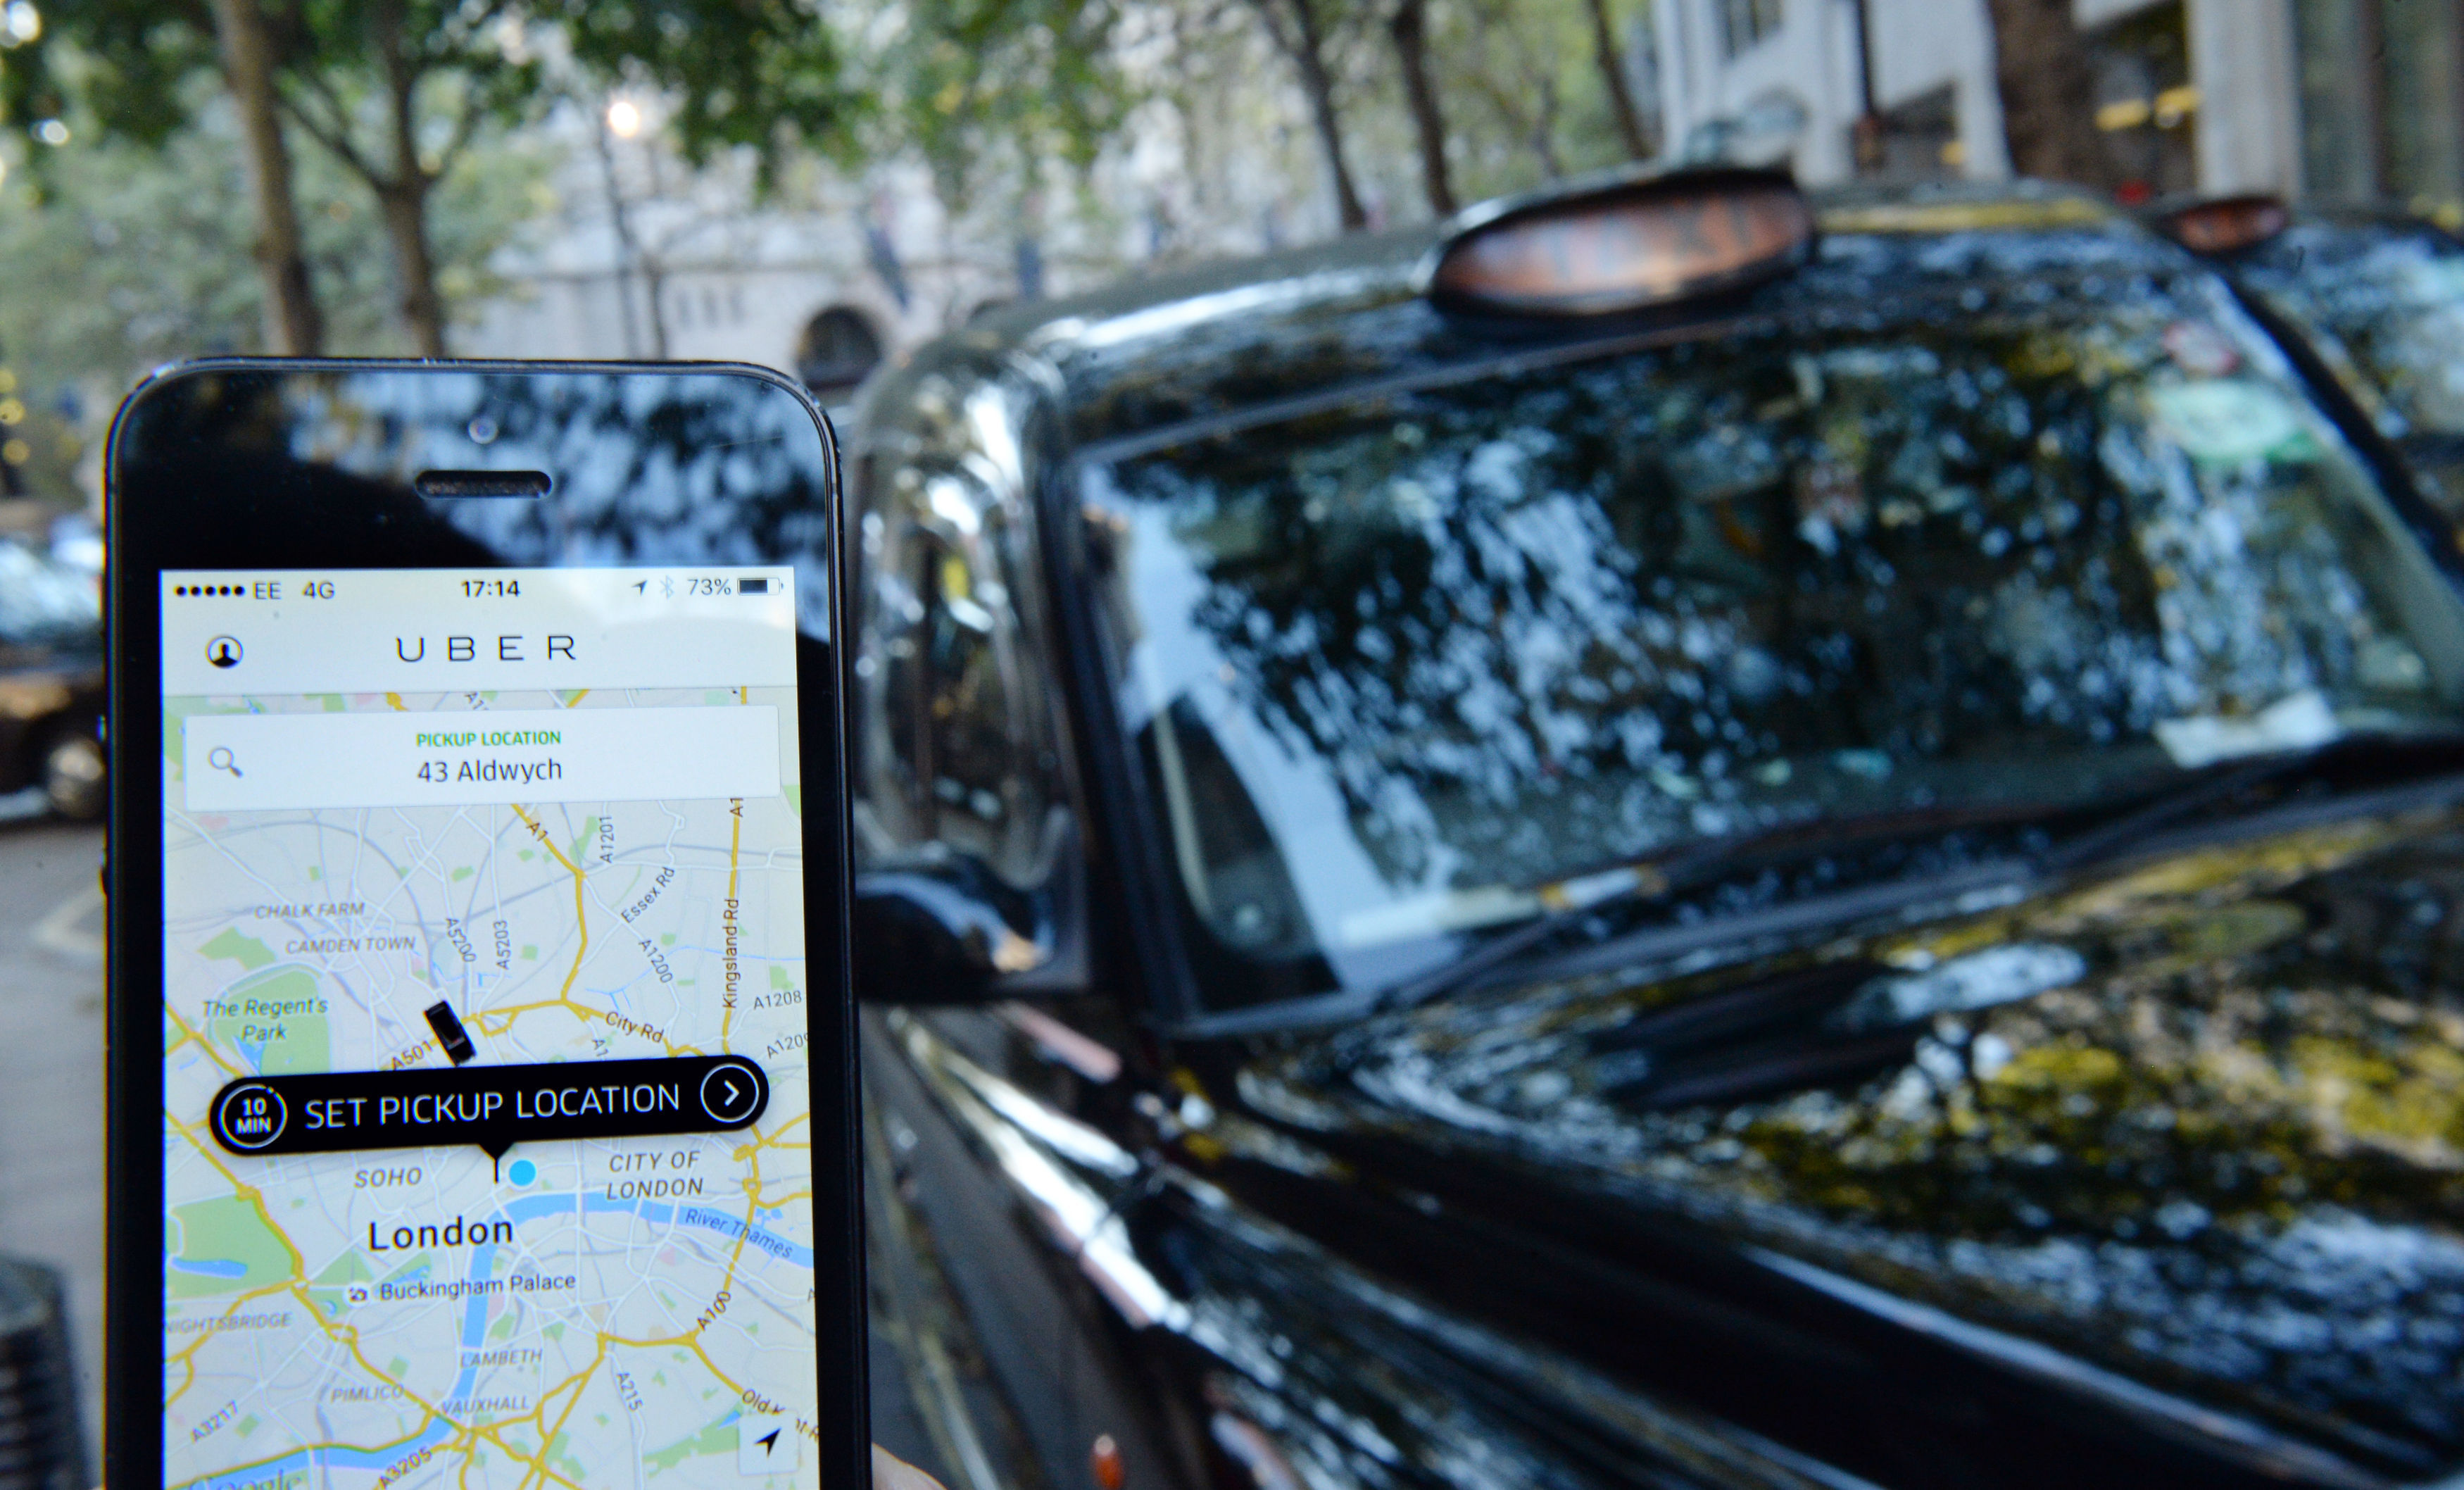 Uber rival Lyft eyeing expansion into London market